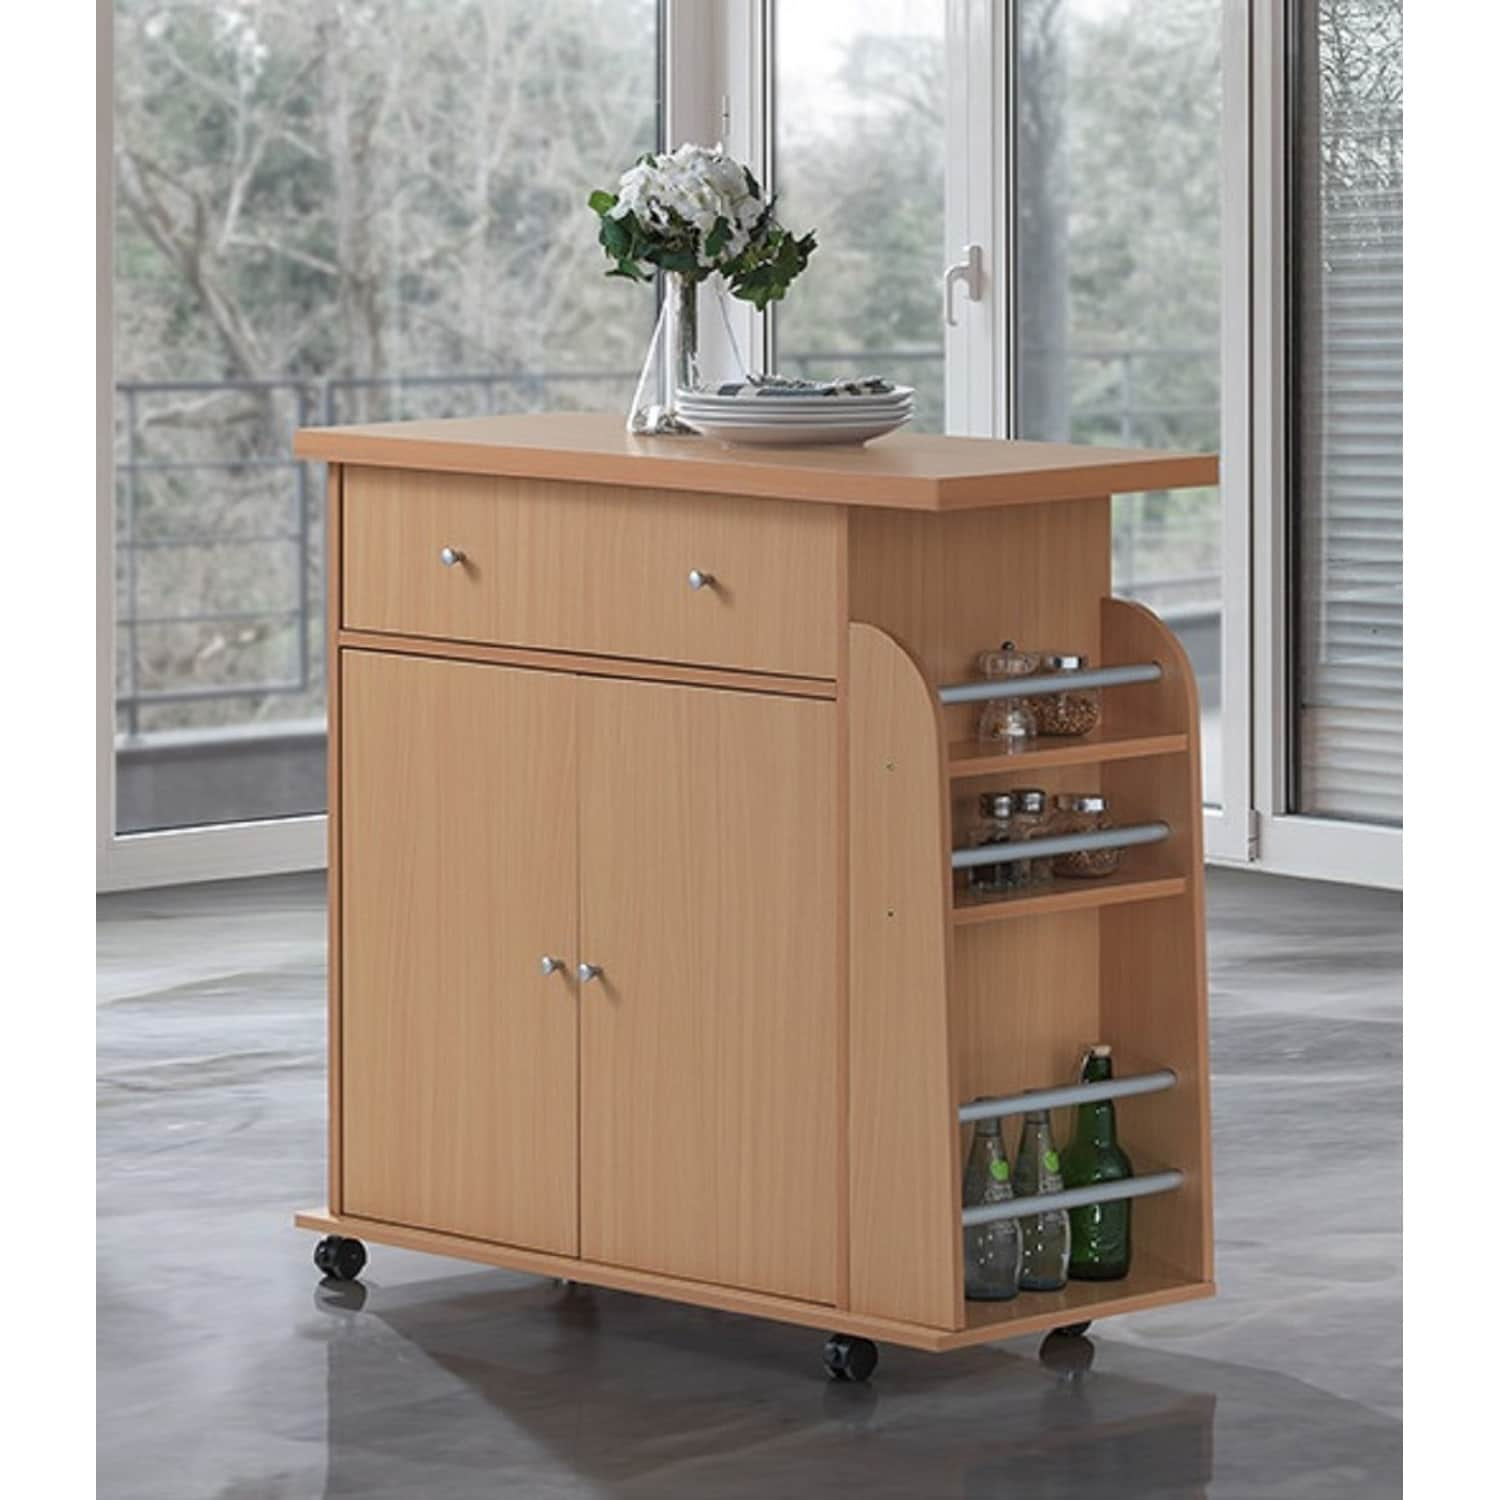 Shop porch den old fourth ward morgan modern mobile kitchen island with spice rack and towel rack free shipping today overstock com 22801530